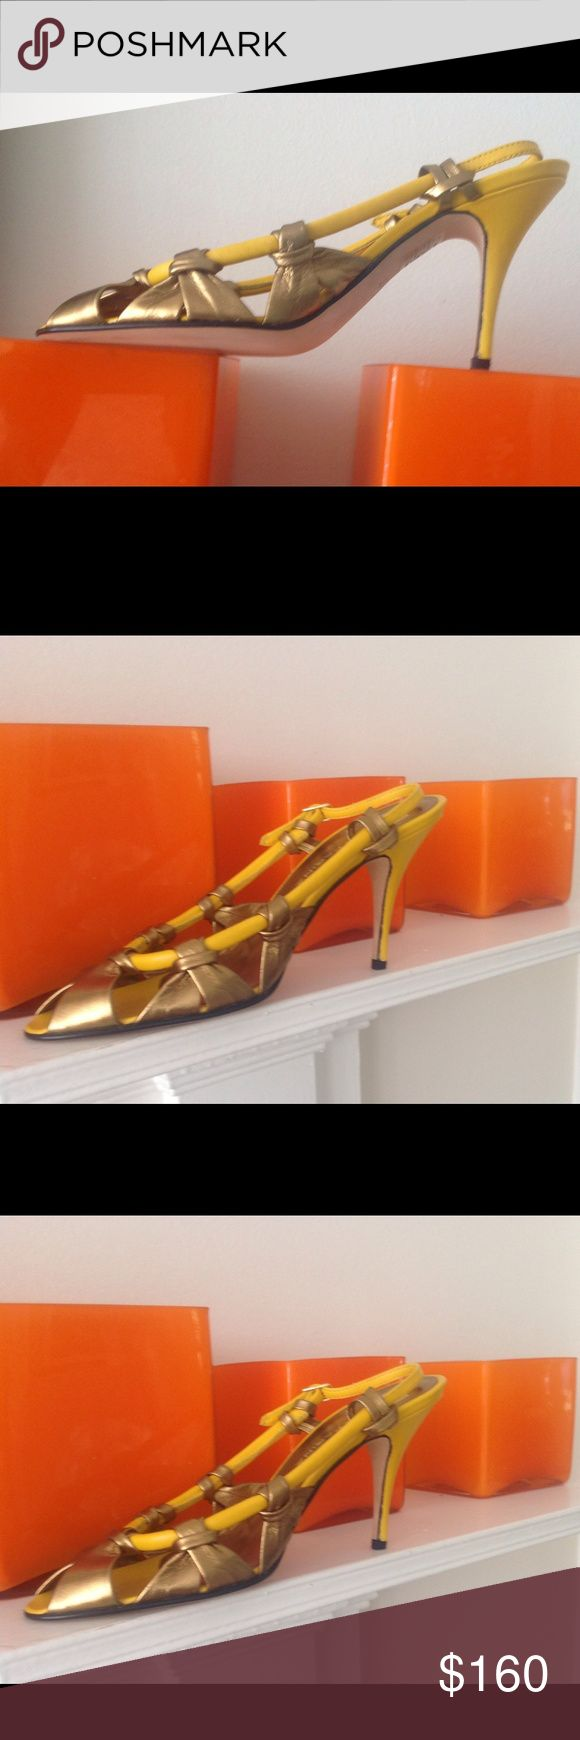 Shoes New! Elegant leather gold bronze and yellow High hill shoe, awesome designer color culmination. Made in Italy by Due Farina Due Farina Shoes Heels